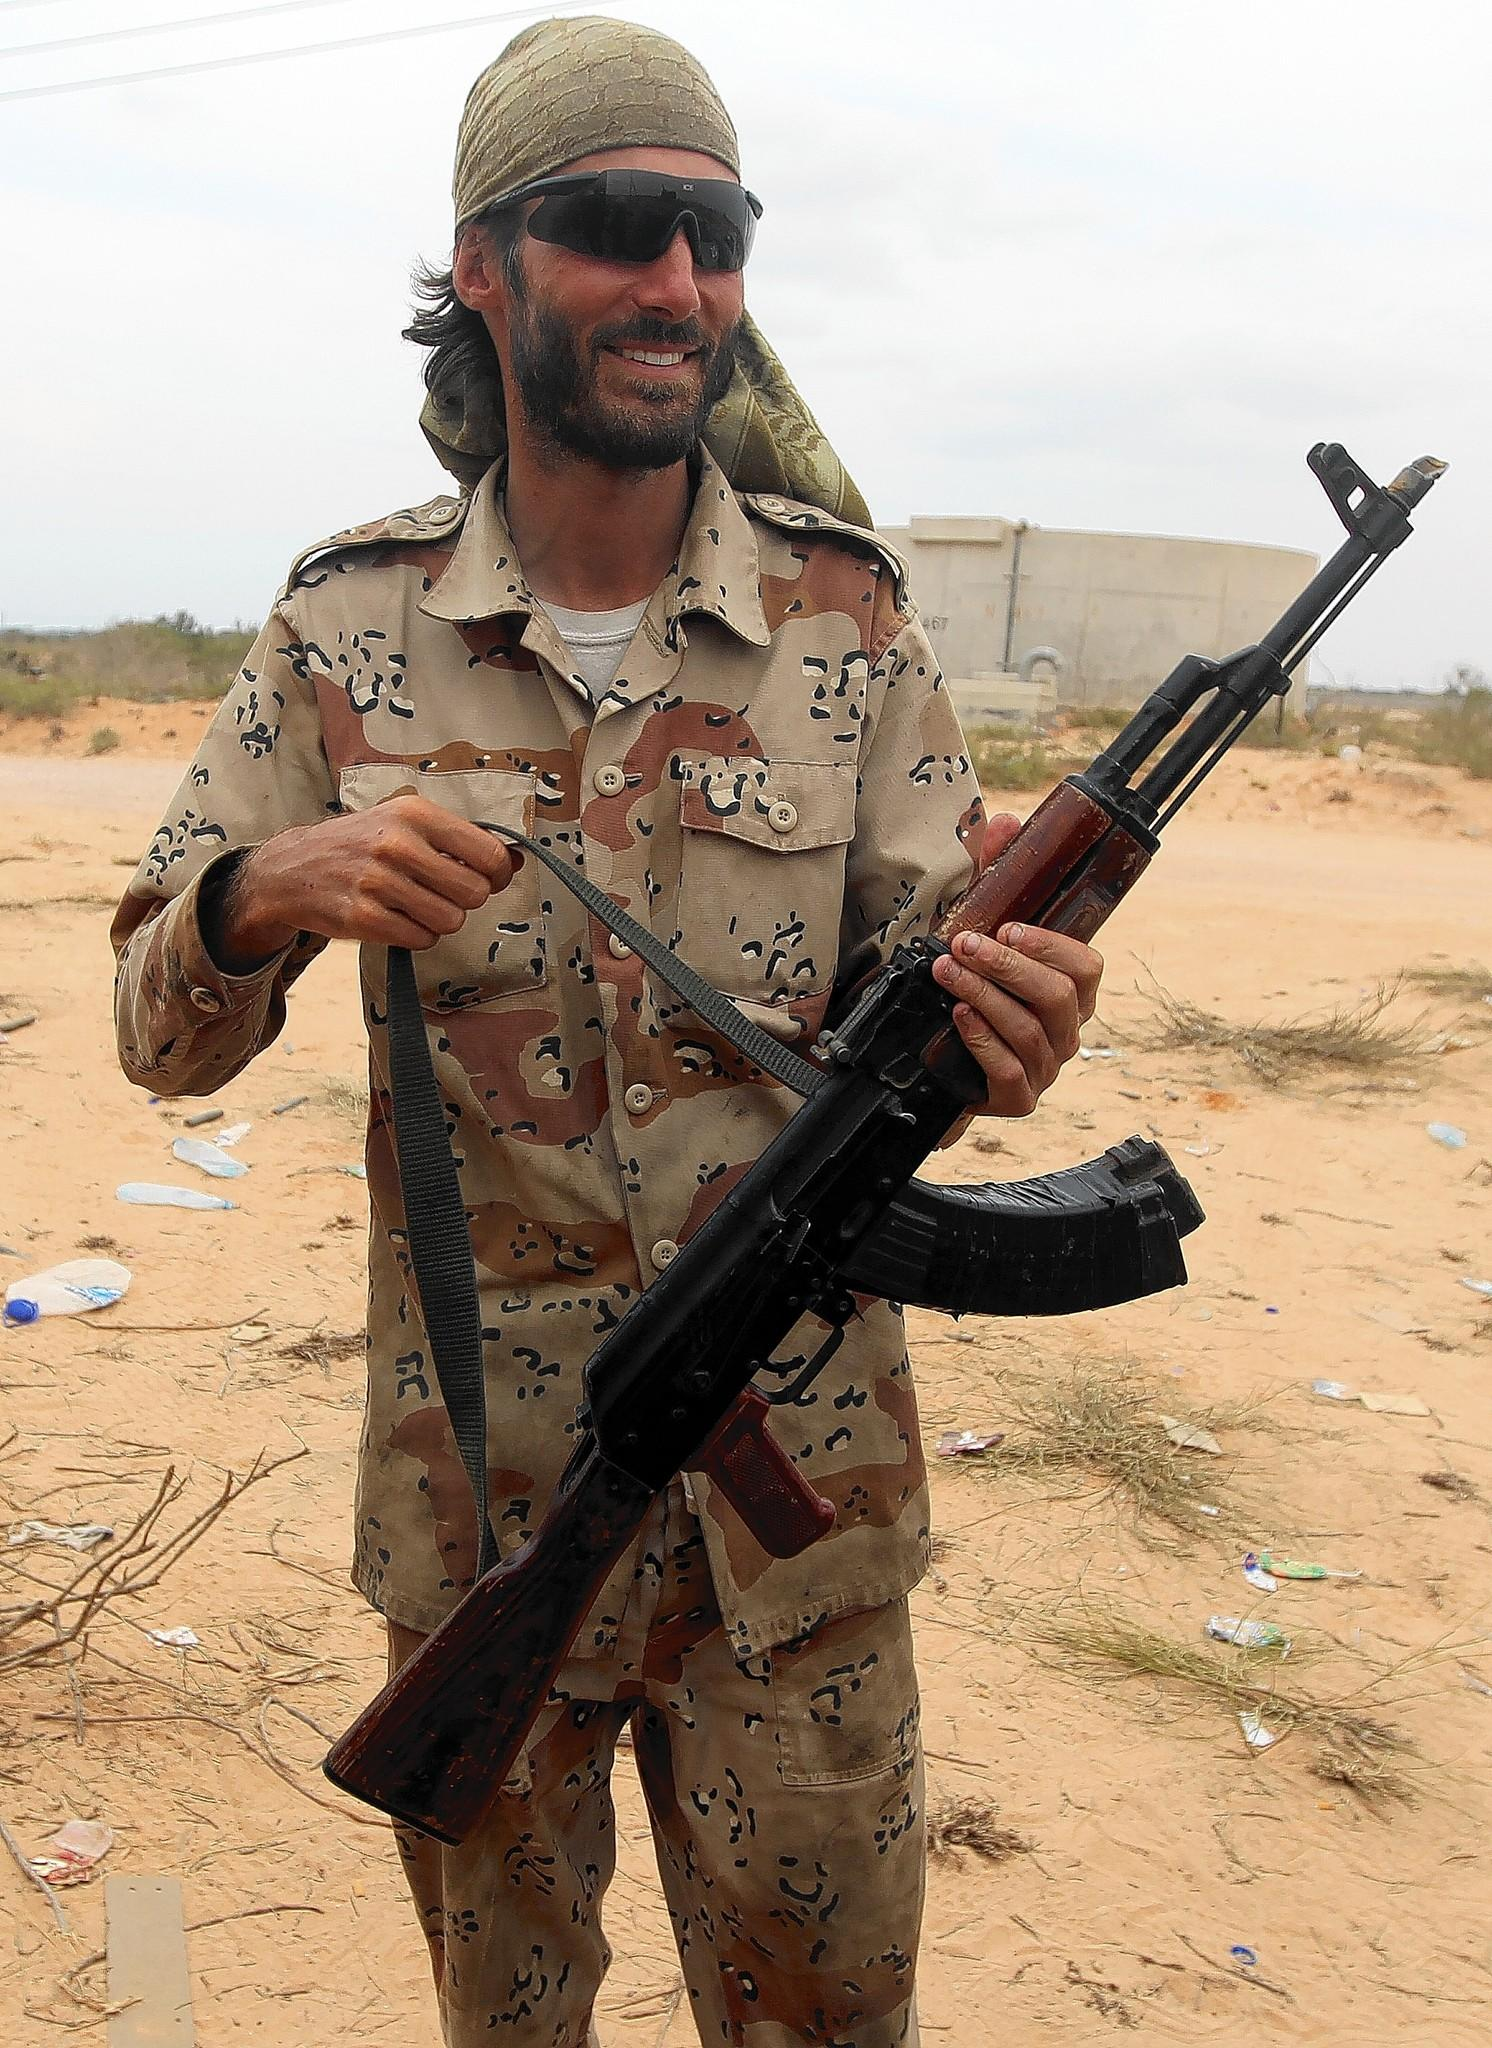 U.S. national Matthew VanDyke holds his gun at the eastern front to the city Sirte on Oct. 2, 2011. VanDyke, from Baltimore, was held by Moamer Kadhafi's forces in Tripoli's dreaded Abu Salim prison for nearly six months before he escaped to join the Libyan rebellion against Kadhafi.